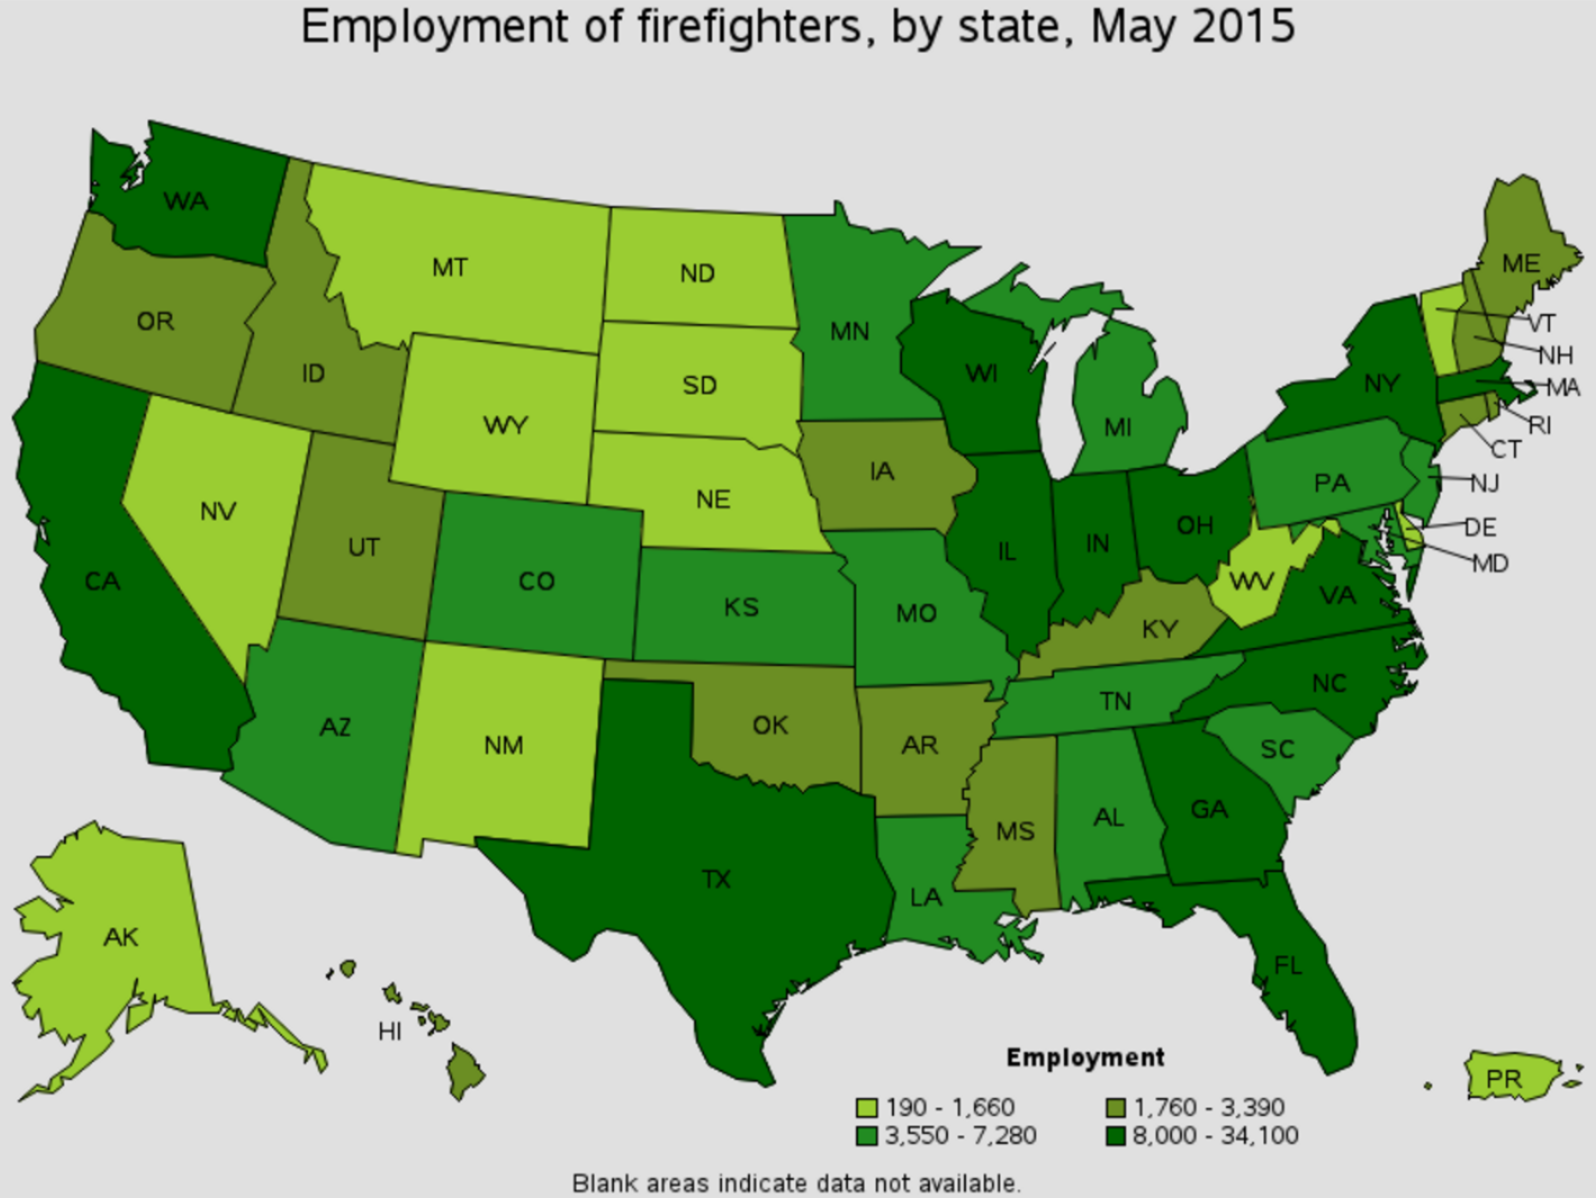 firefighter job outlook by state Winfield Illinois